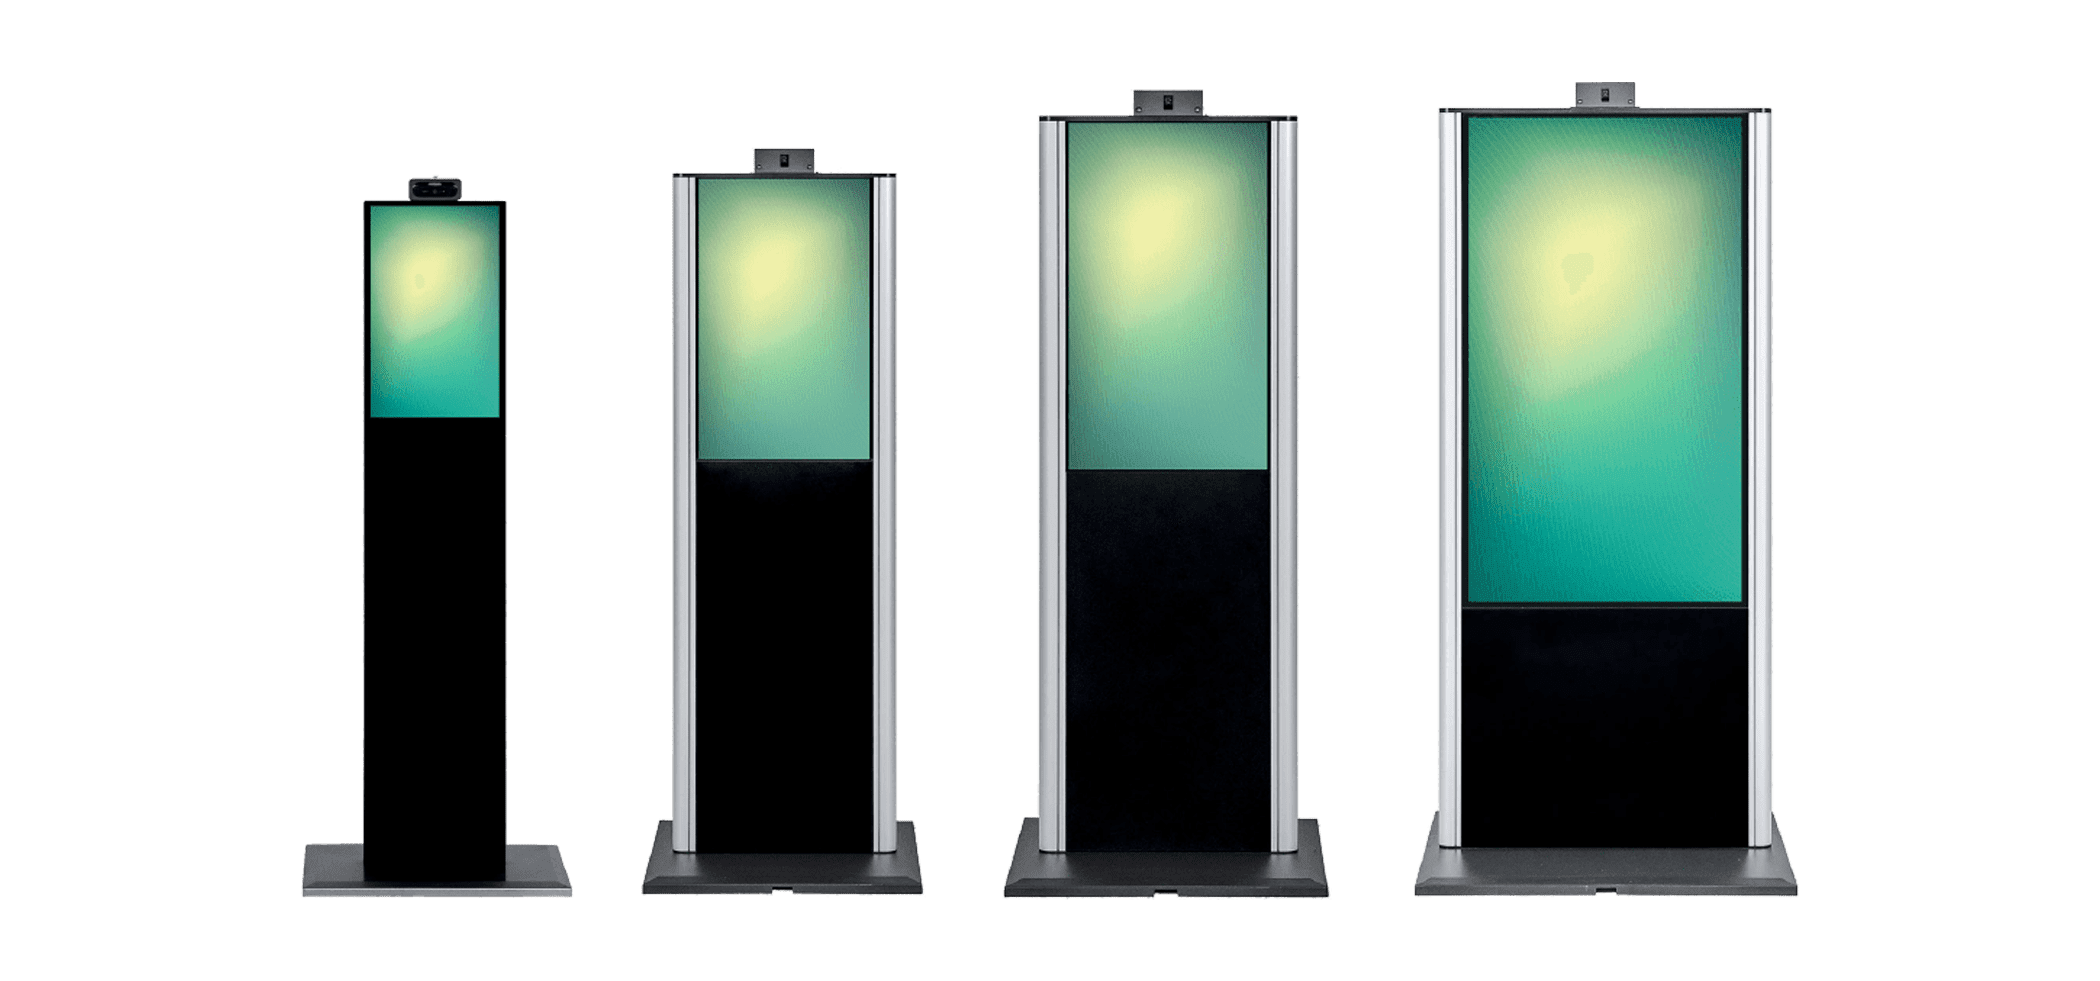 Metroclick Kiosk Company and Manufacturer in NYC